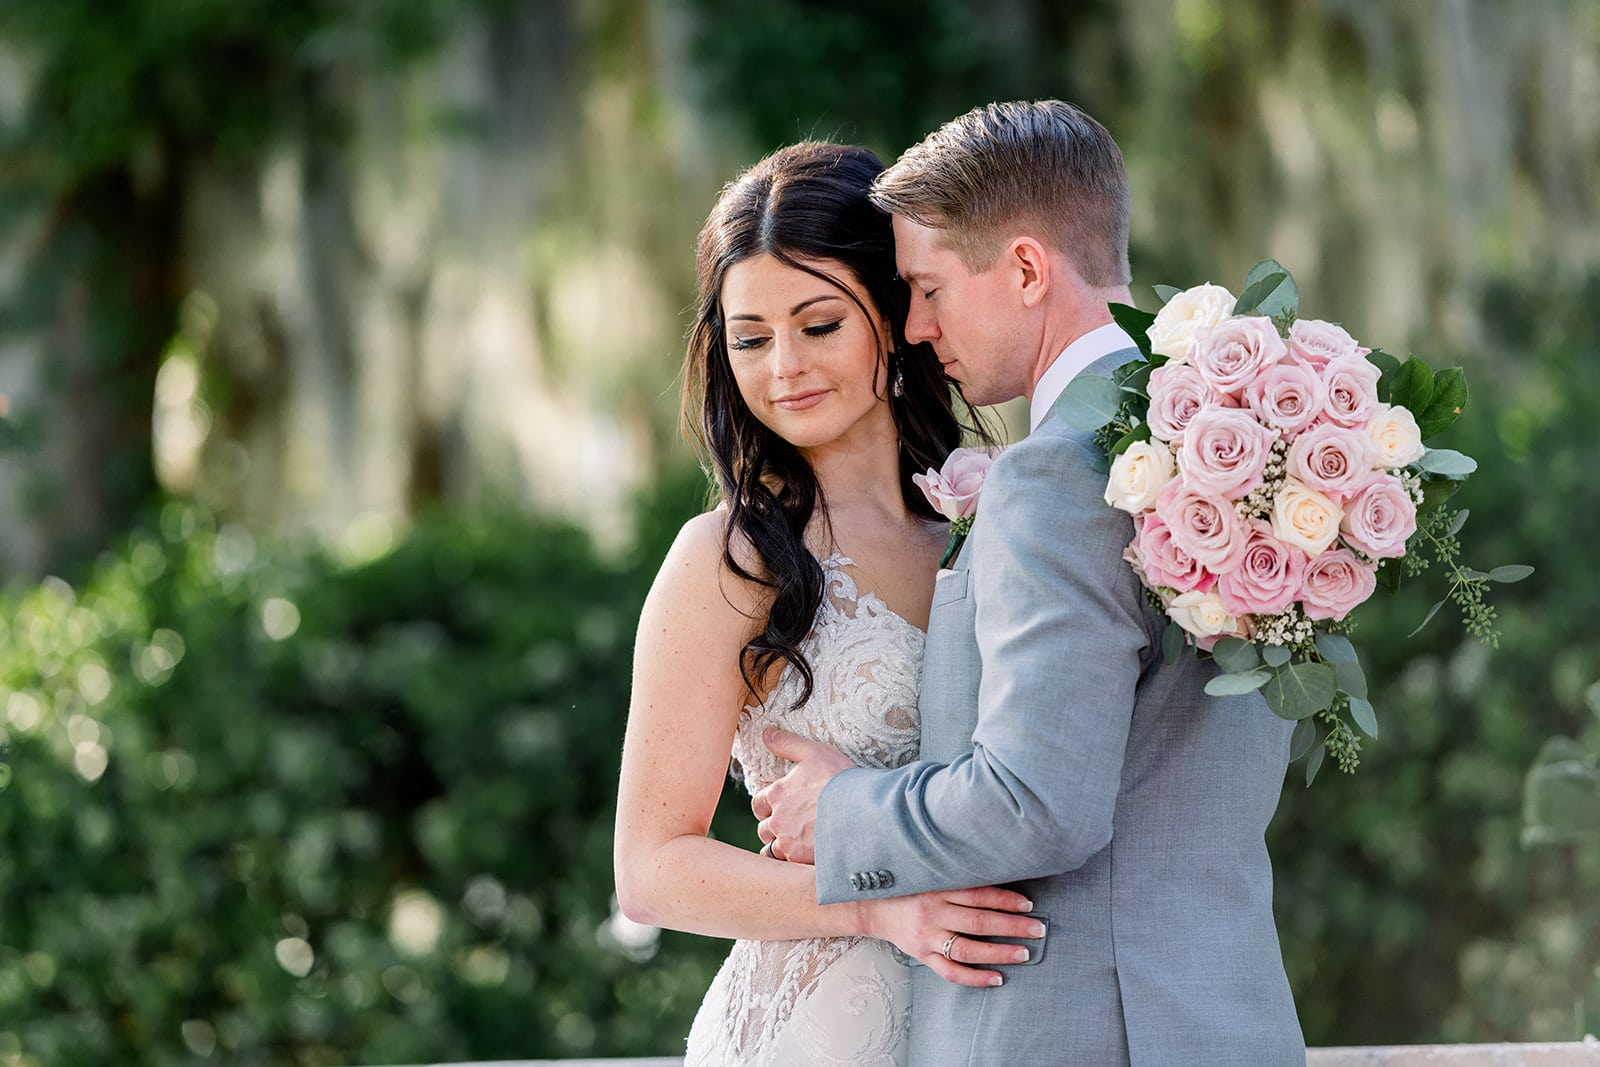 Chynna Pacheco Photography - bride and groom embracing each other large pink rose bouquet